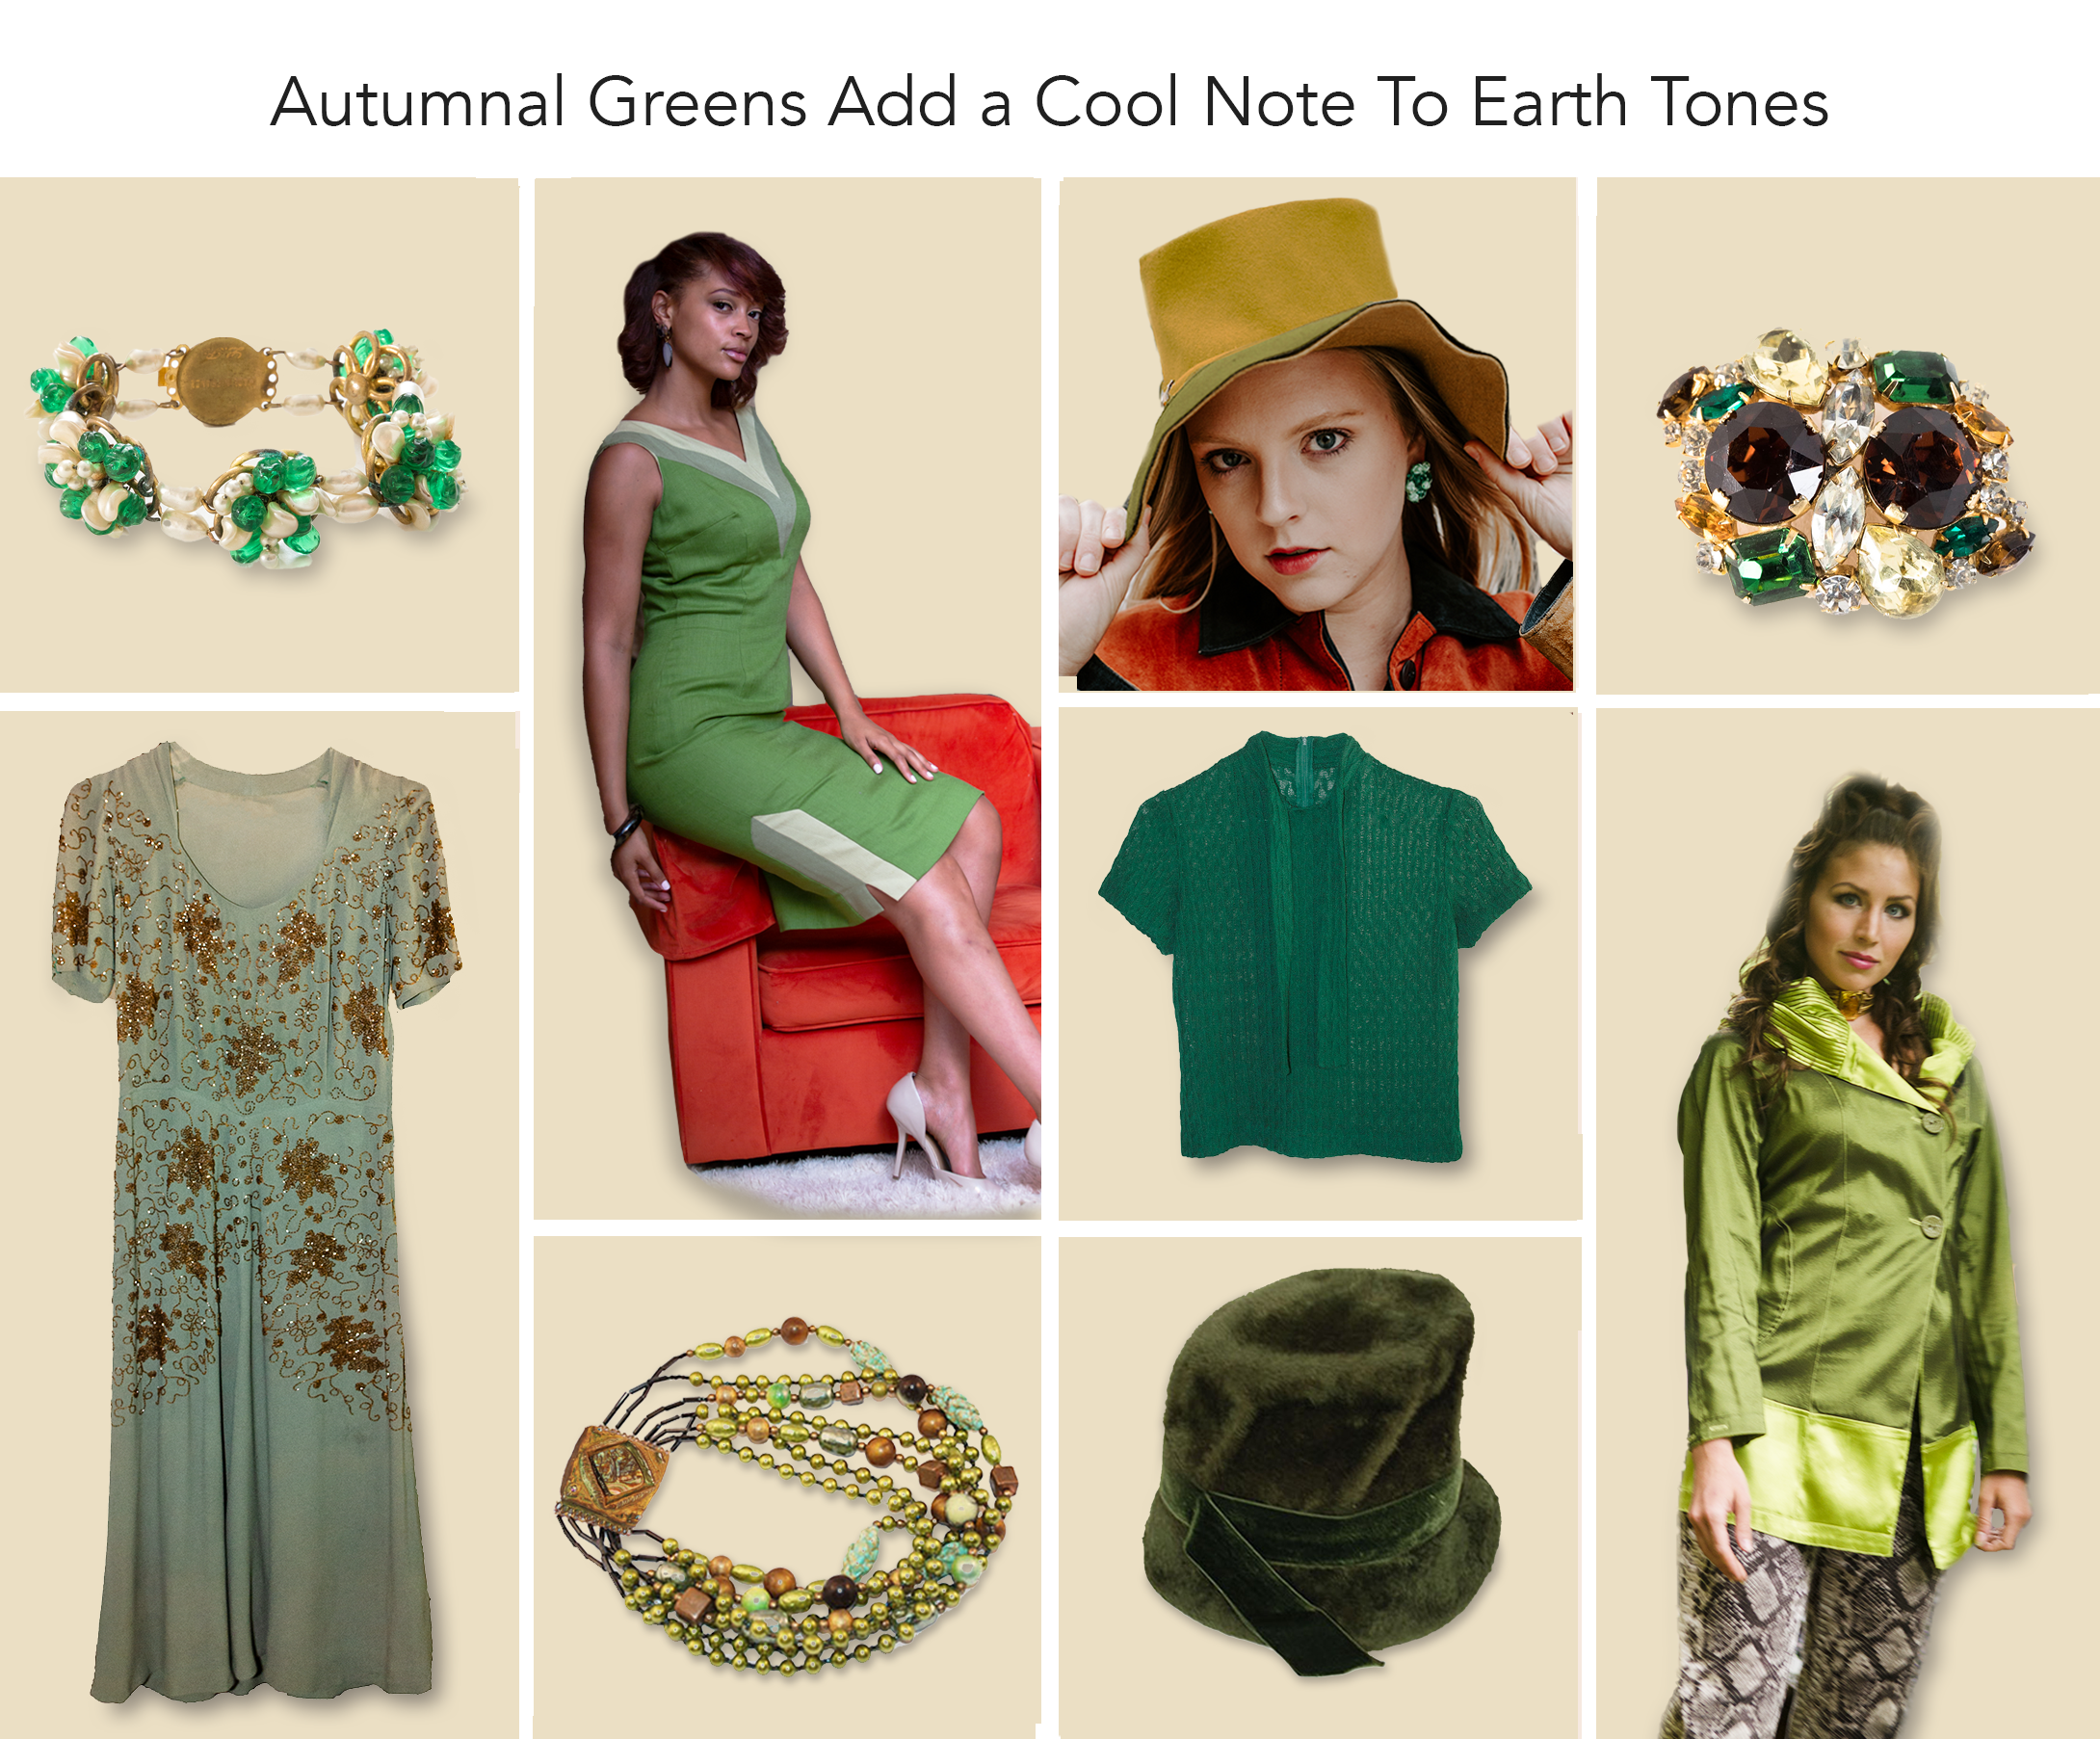 Autumnal Greens Trending Now